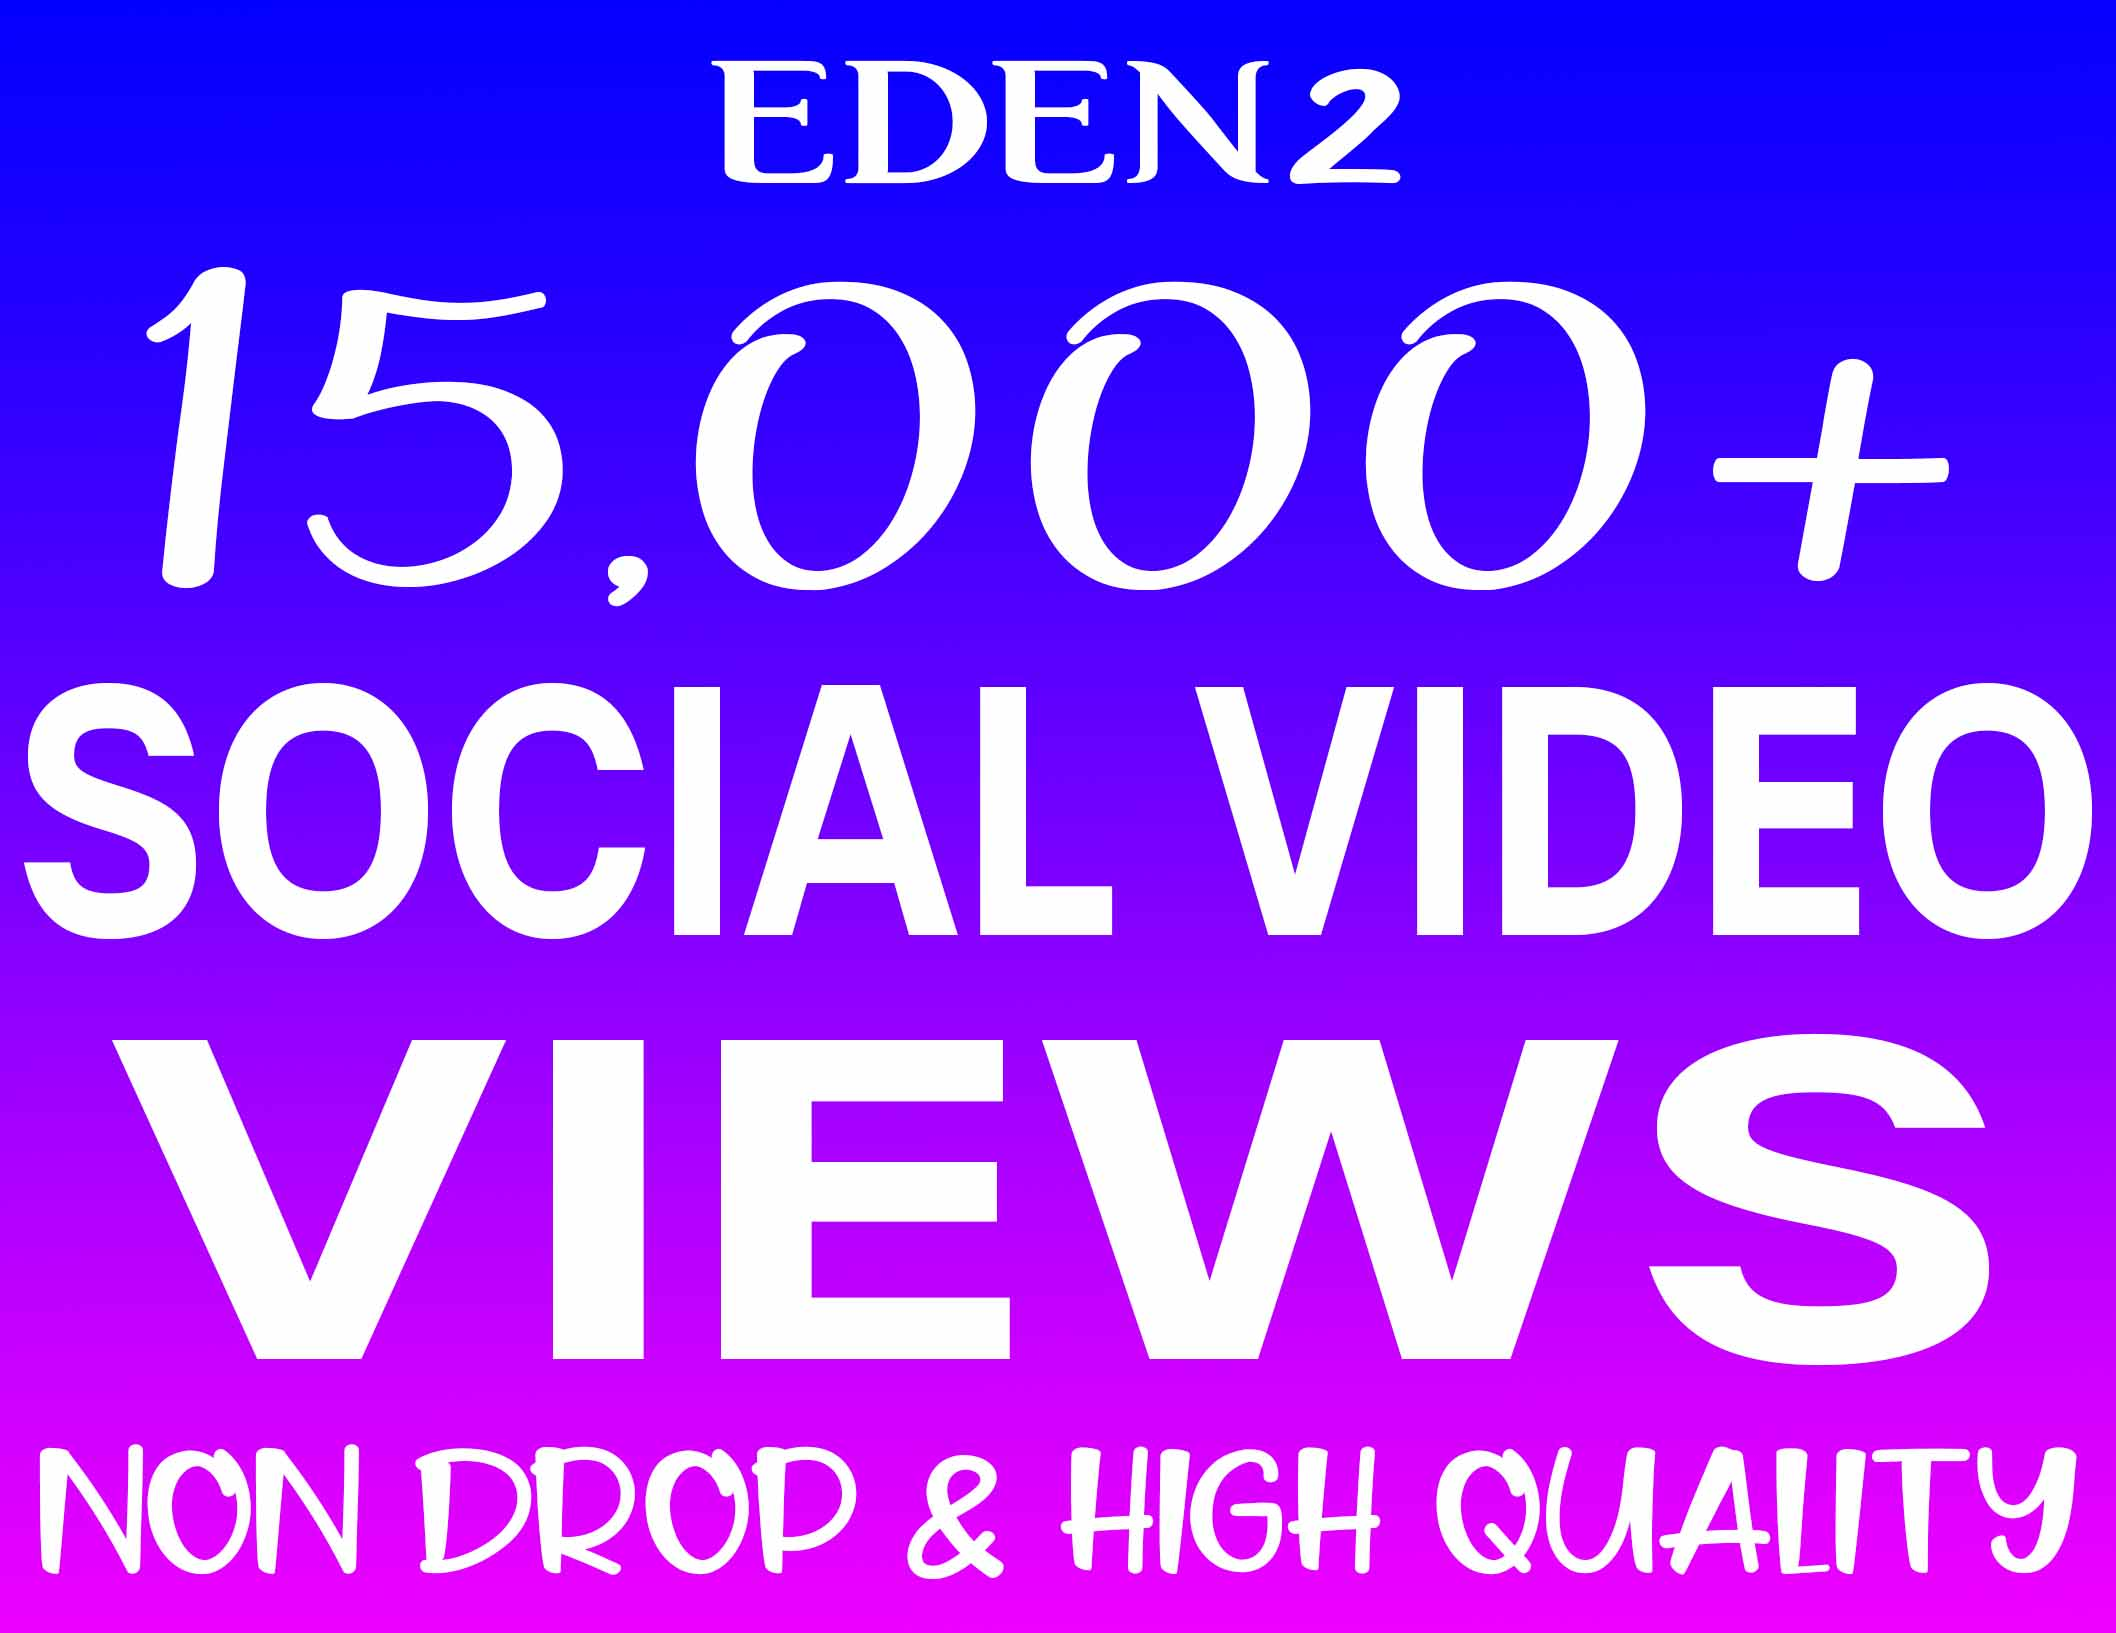 Add 15K Social Video Views Non Drop & High Quality - INSTANT START